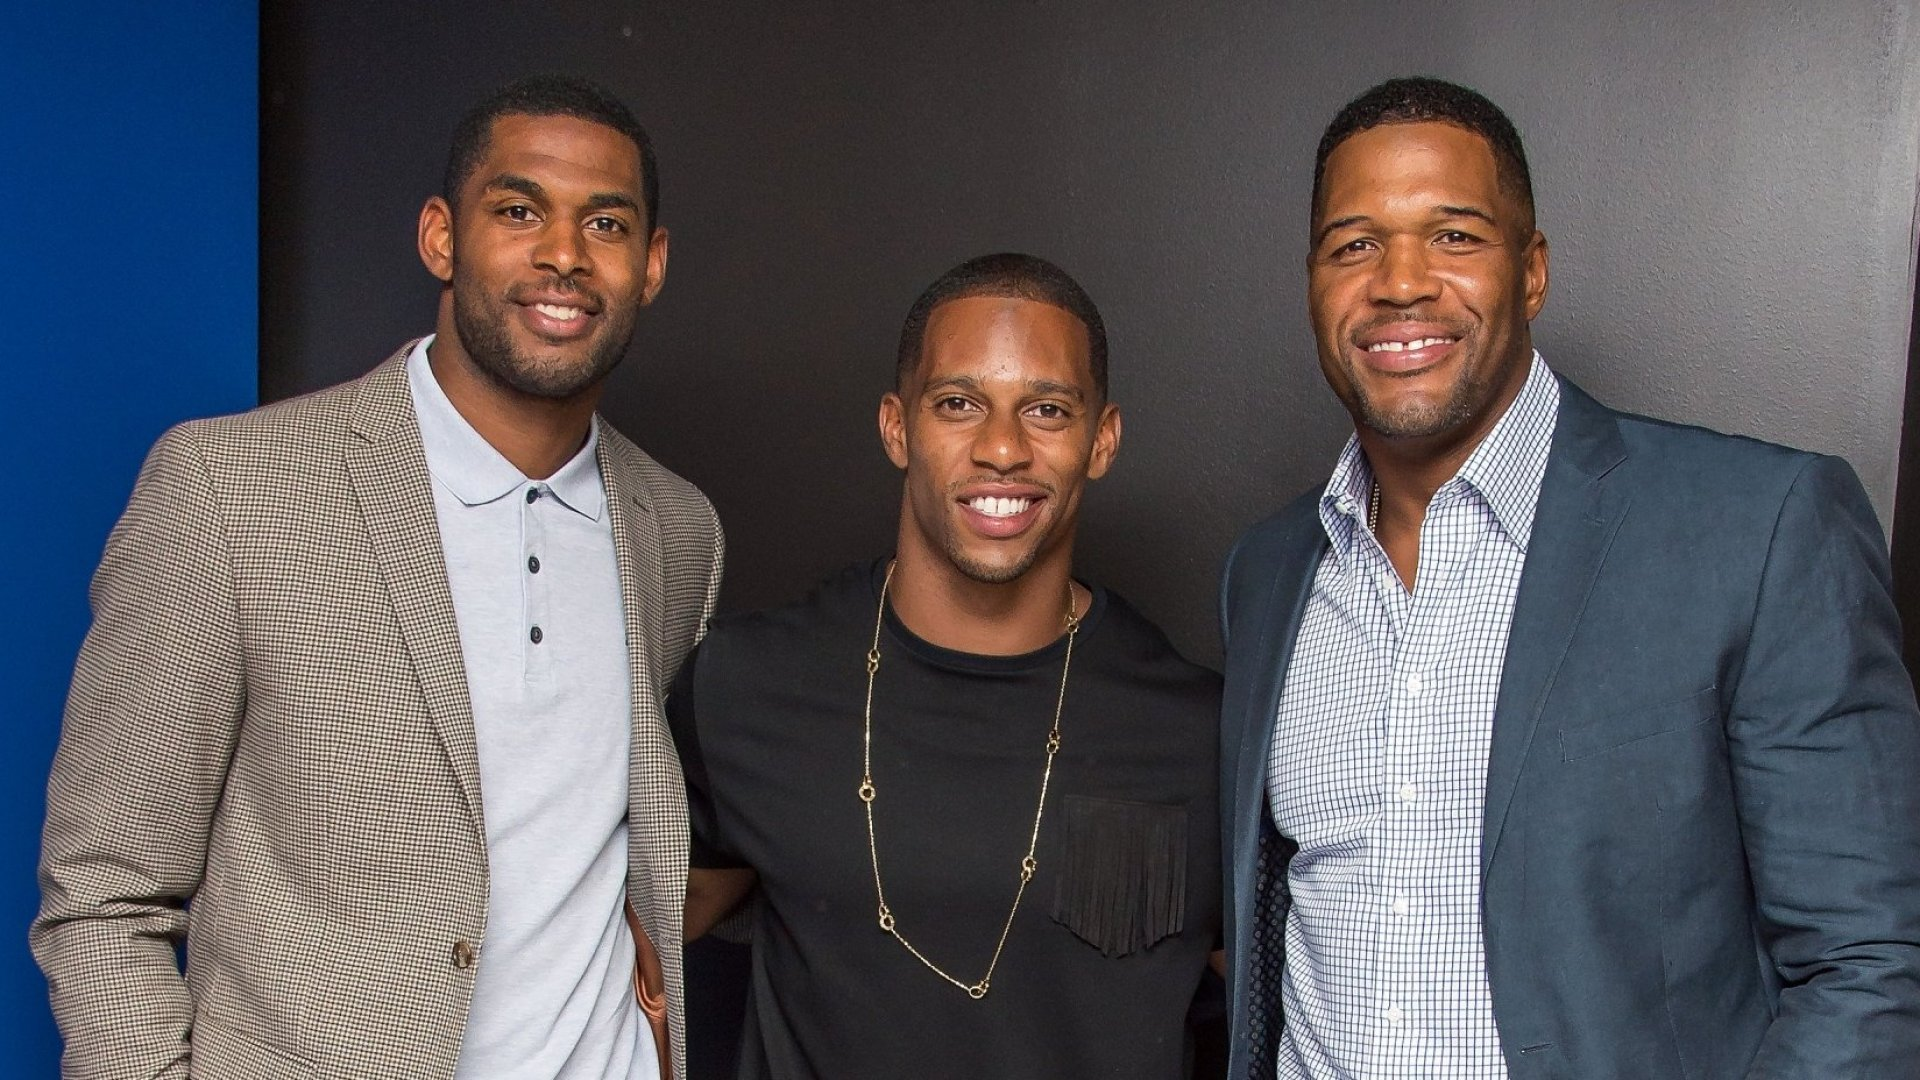 Marques Colston (left) is a prime example of an NFL player making a smooth transition from the field to the boardroom.